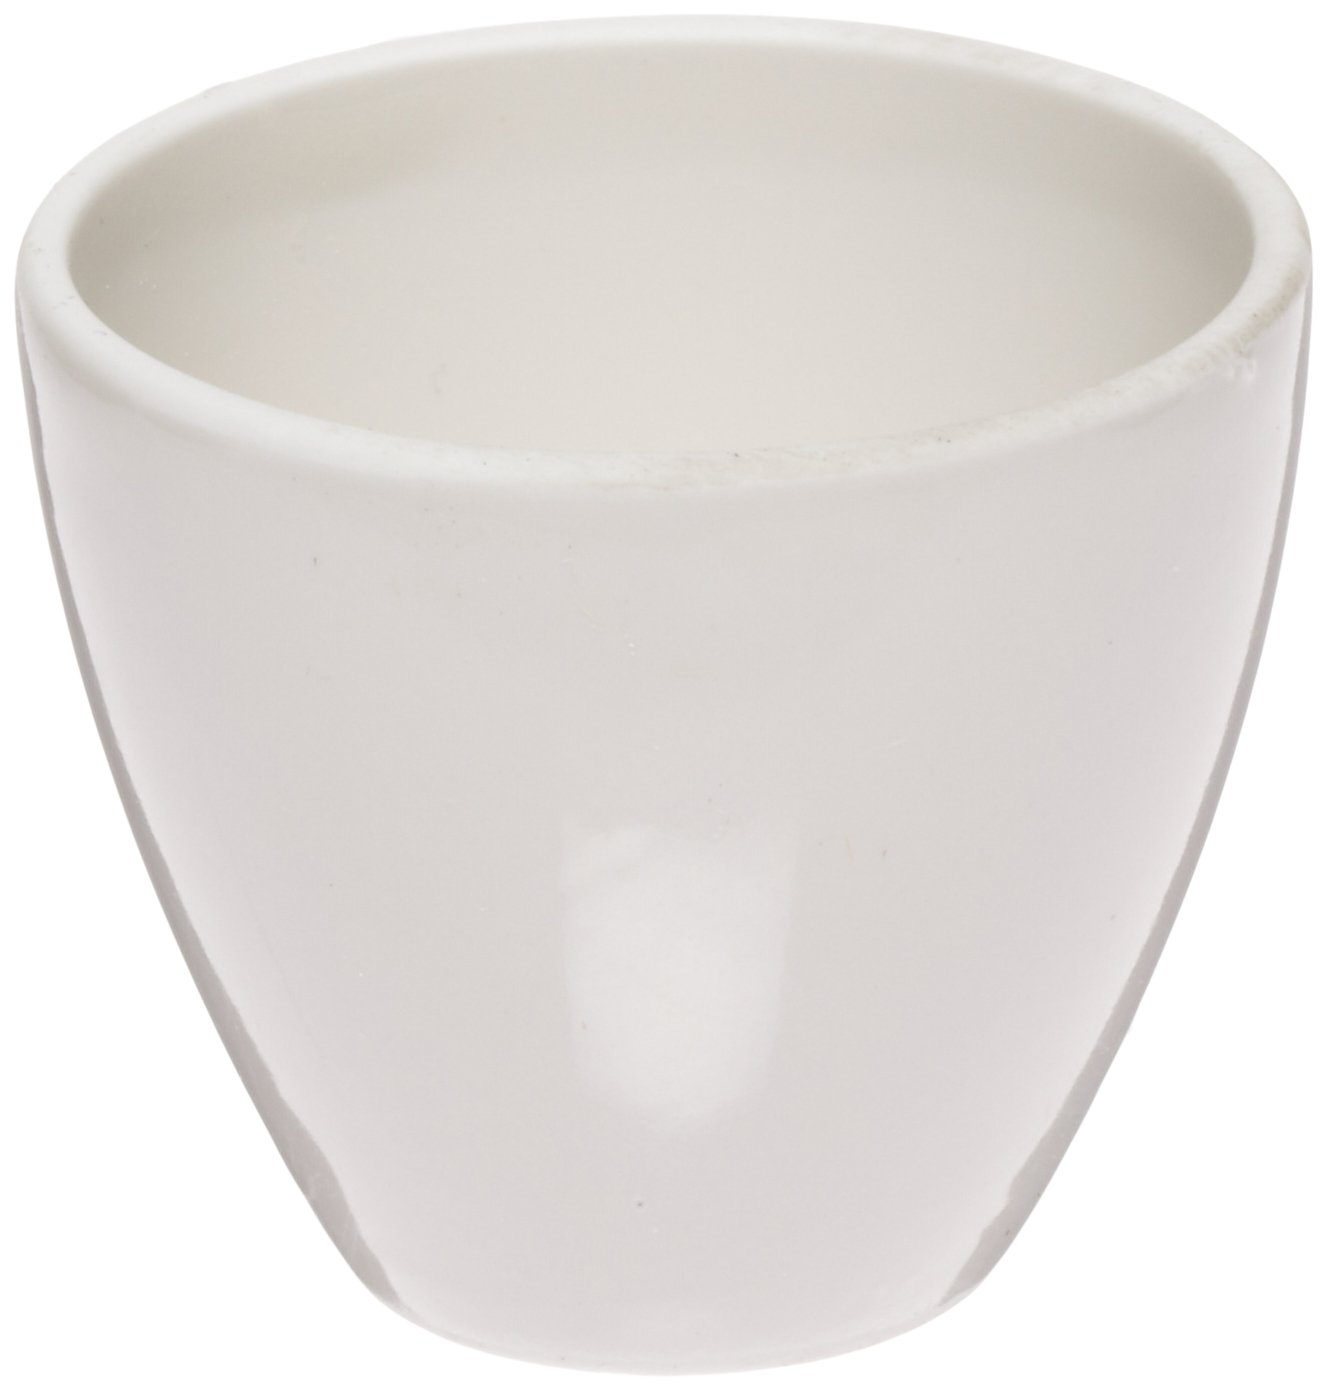 CoorsTek 60105 Porcelain Ceramic High Form Crucible, 15mL Capacity, 35mm OD, 29mm Height (Case of 72)